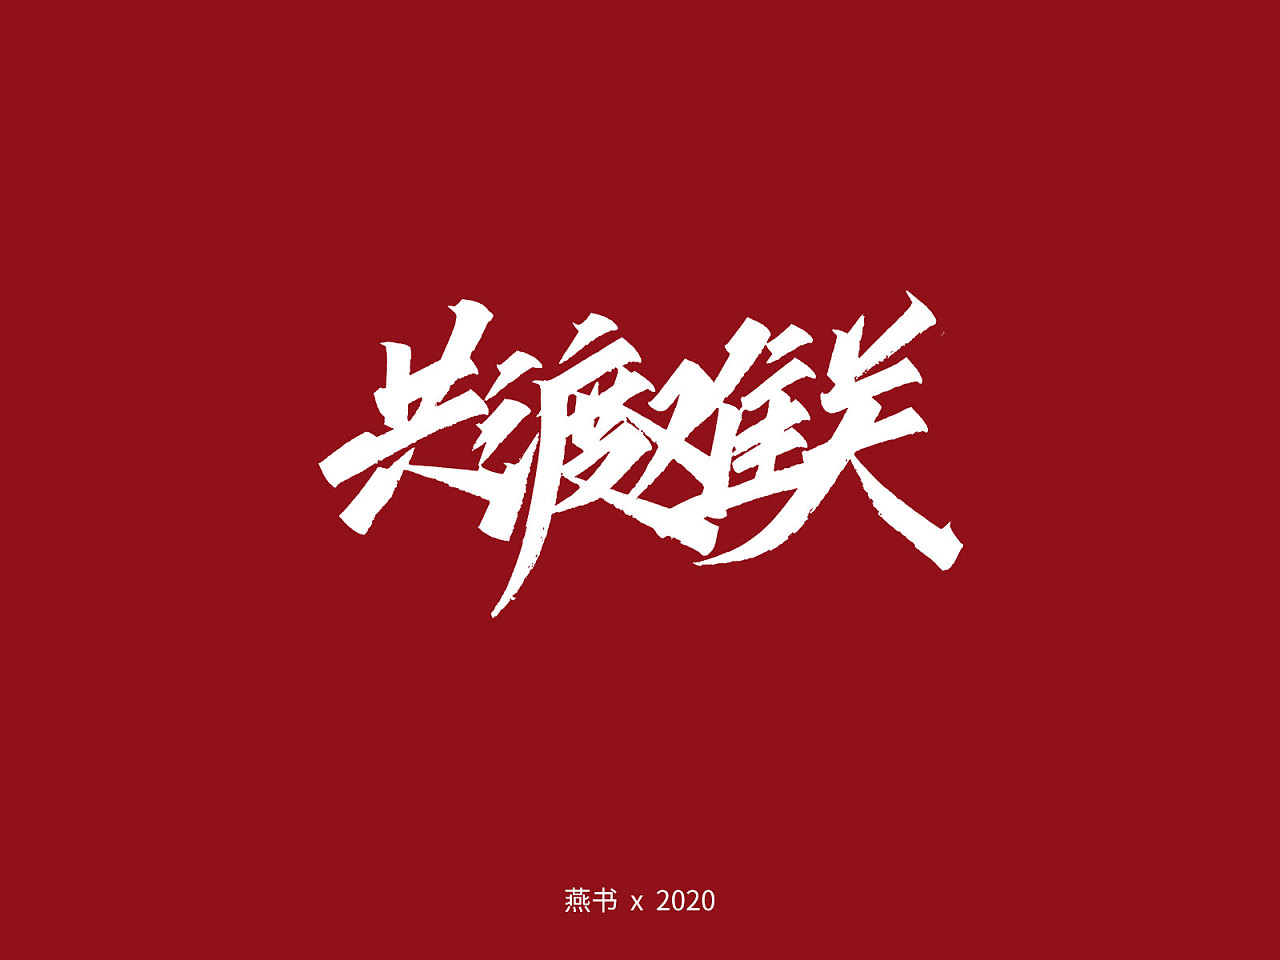 Chinese Creative Font Design-I hope angels in white will return safely.